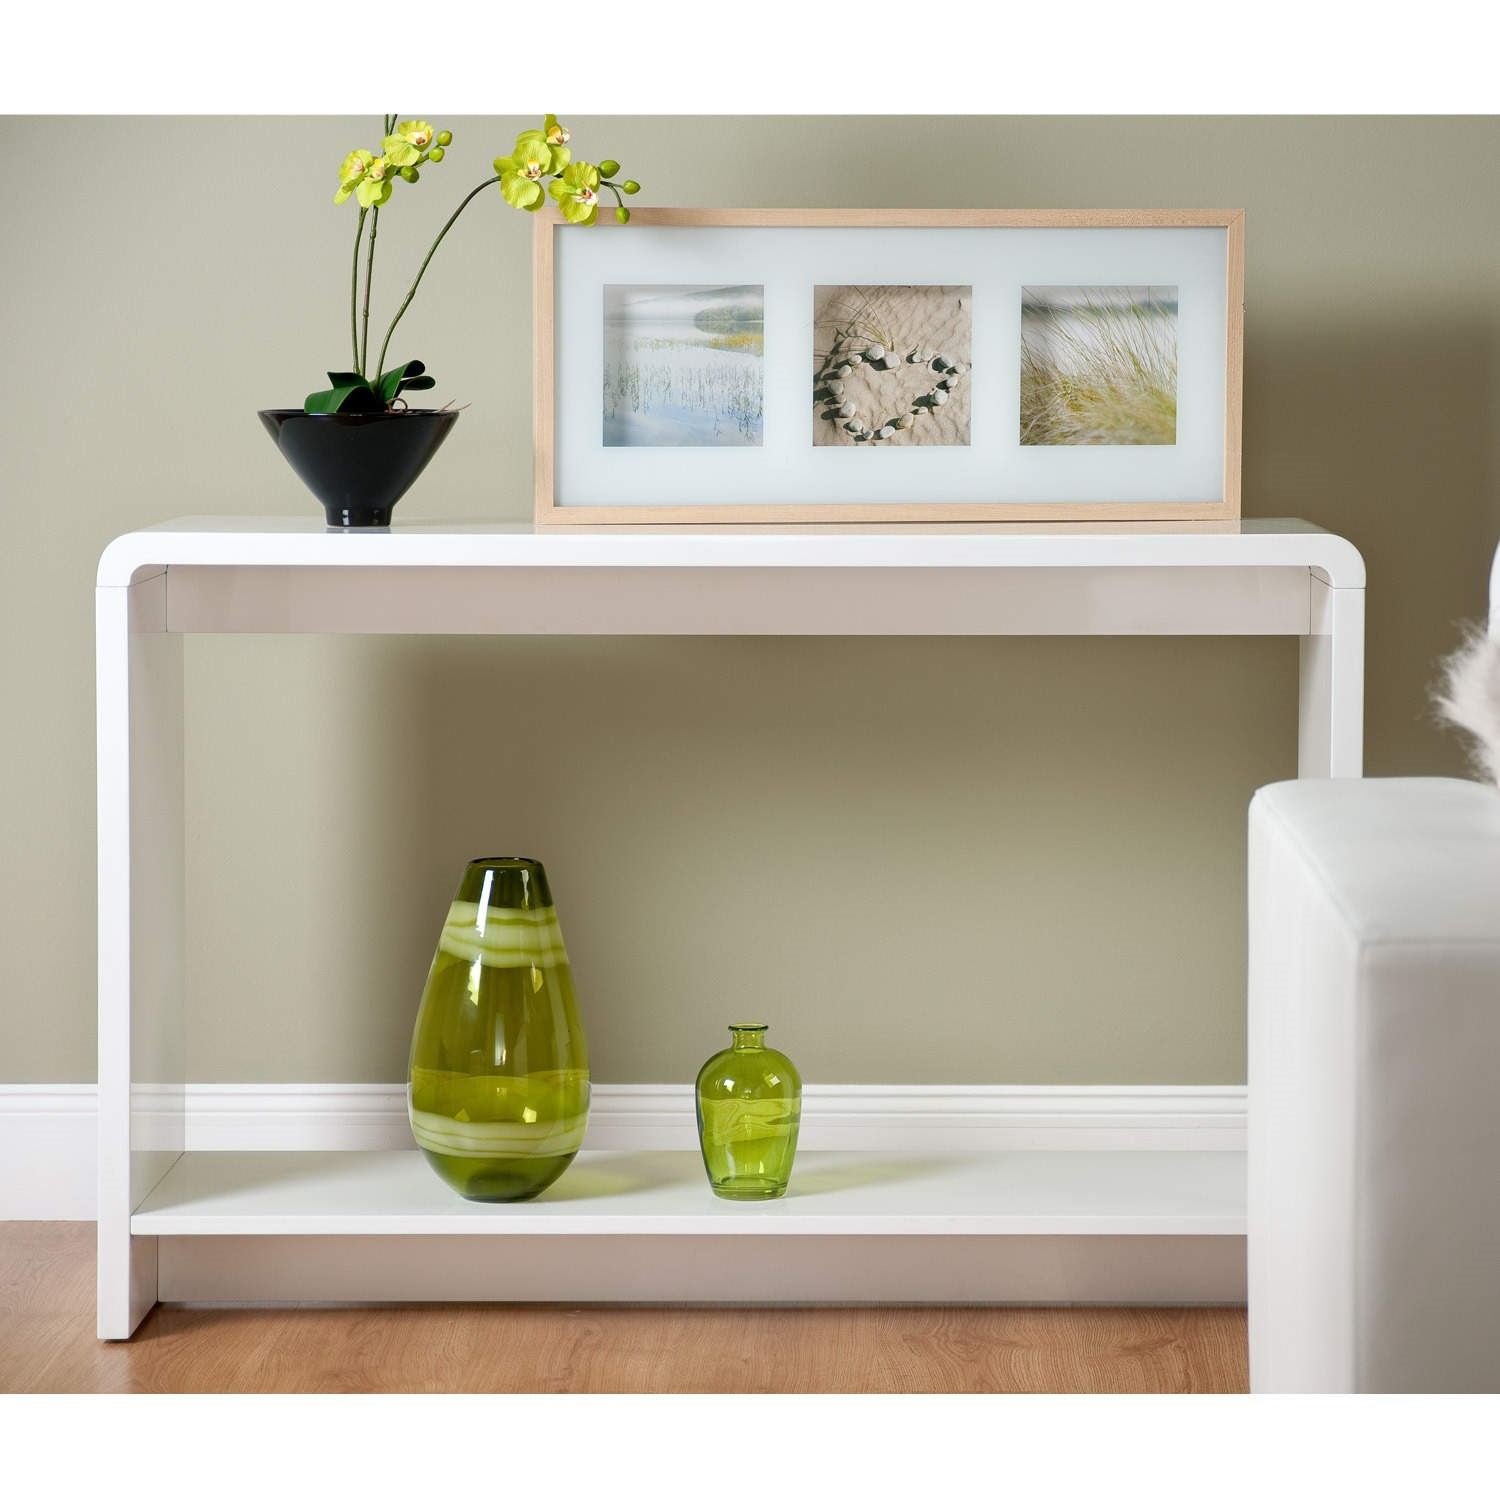 World Furniture Toscana Console Table in High Gloss White Furniture123